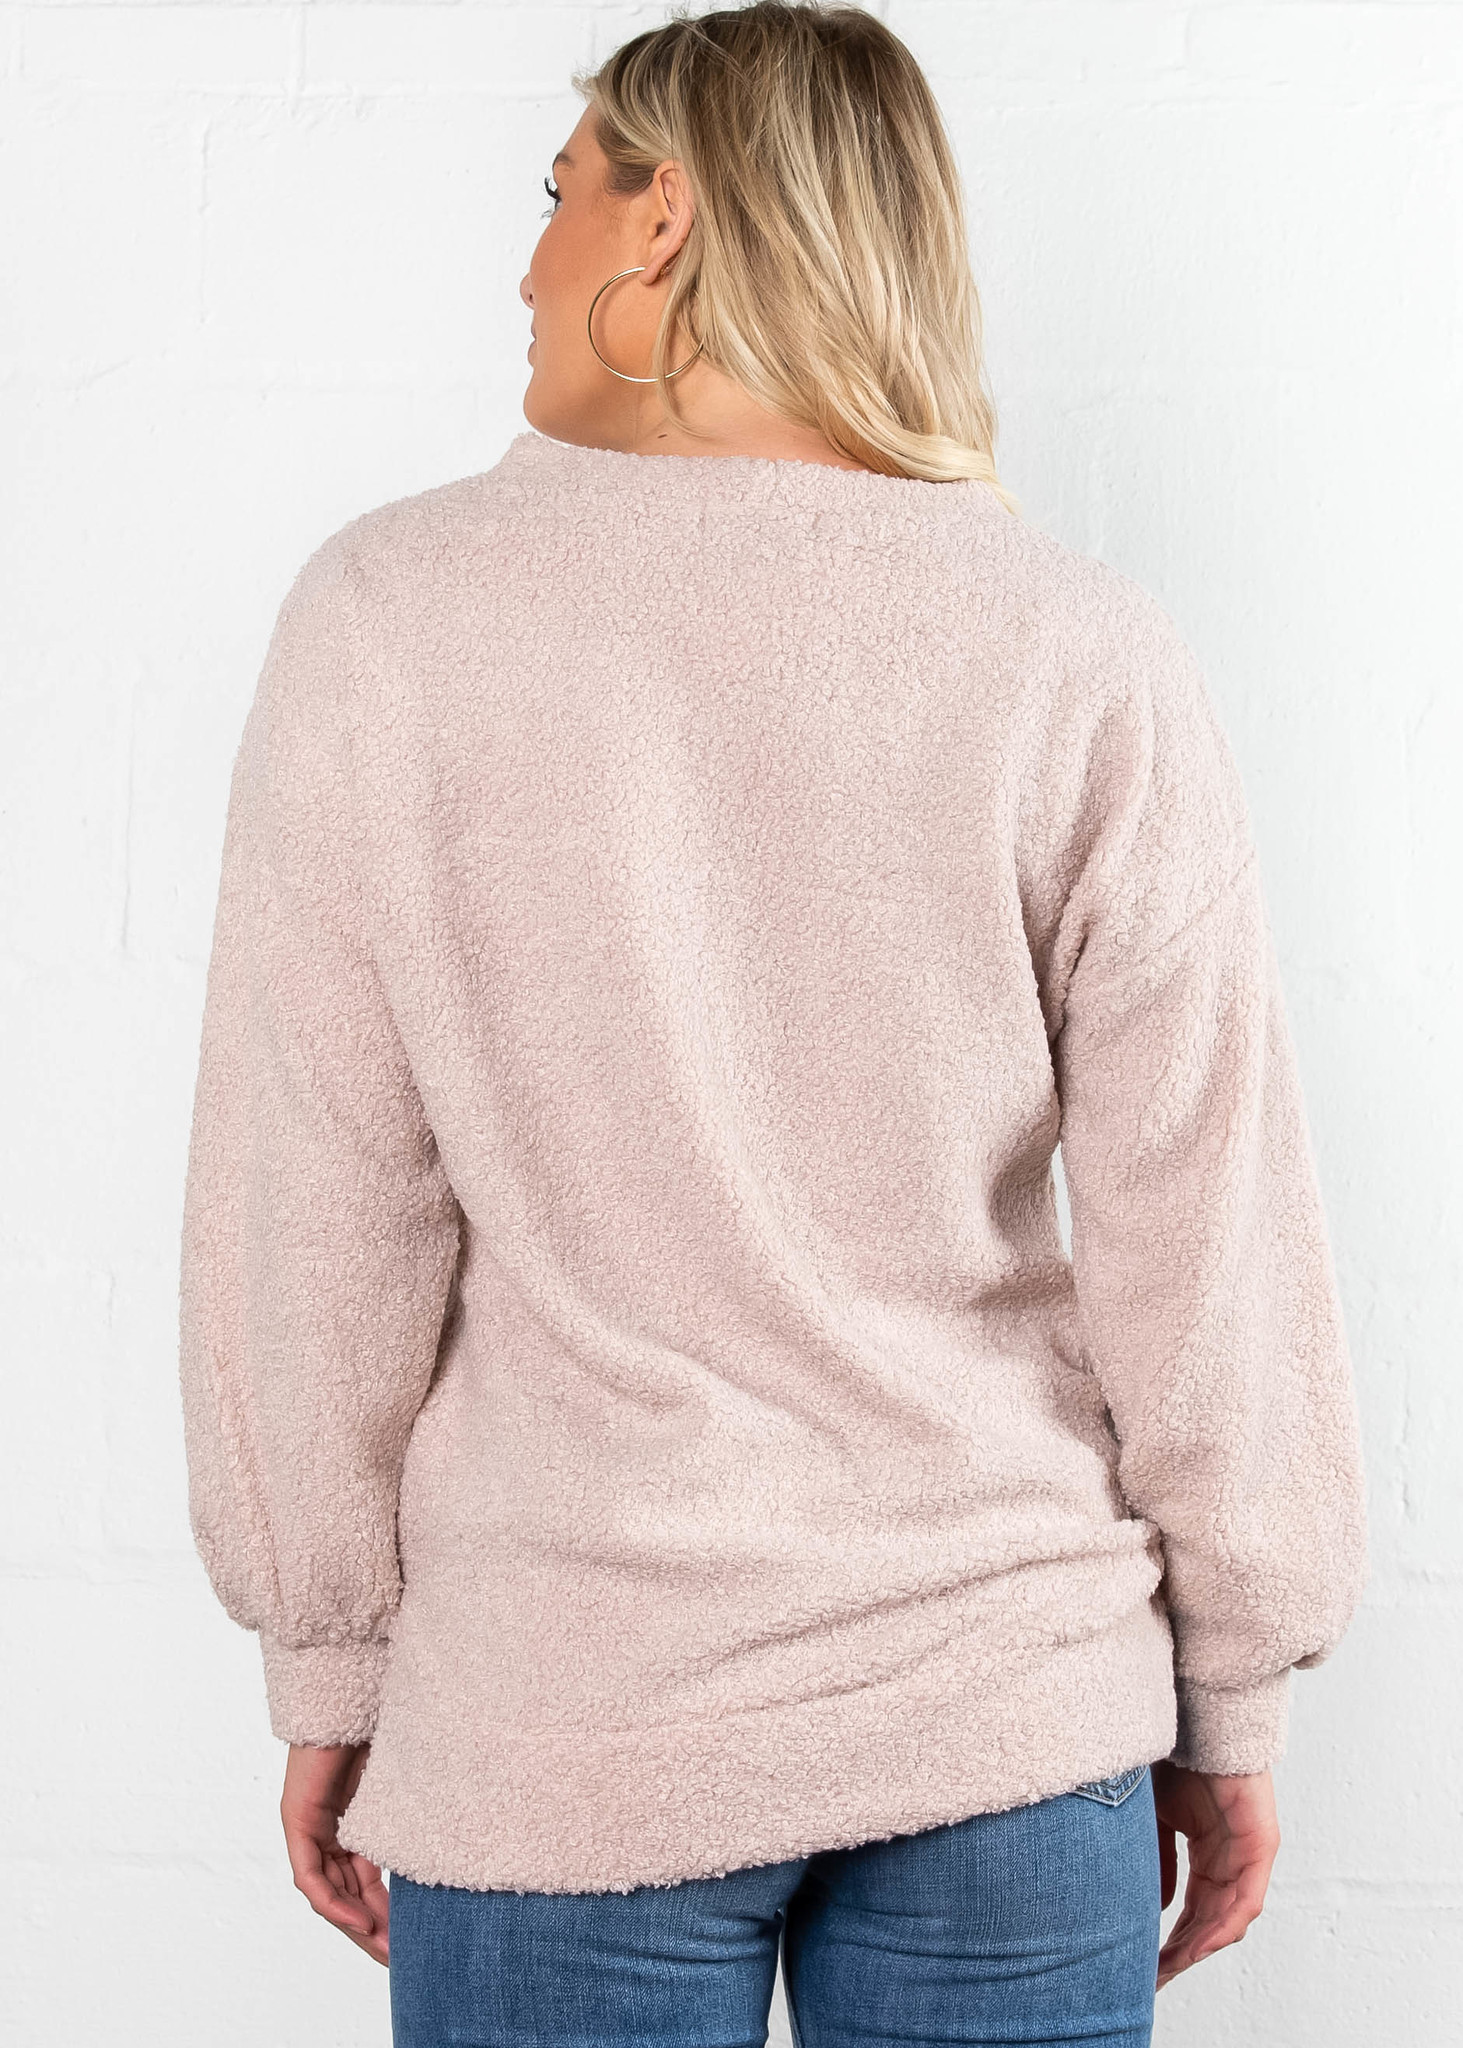 LET'S BE COZY SWEATER